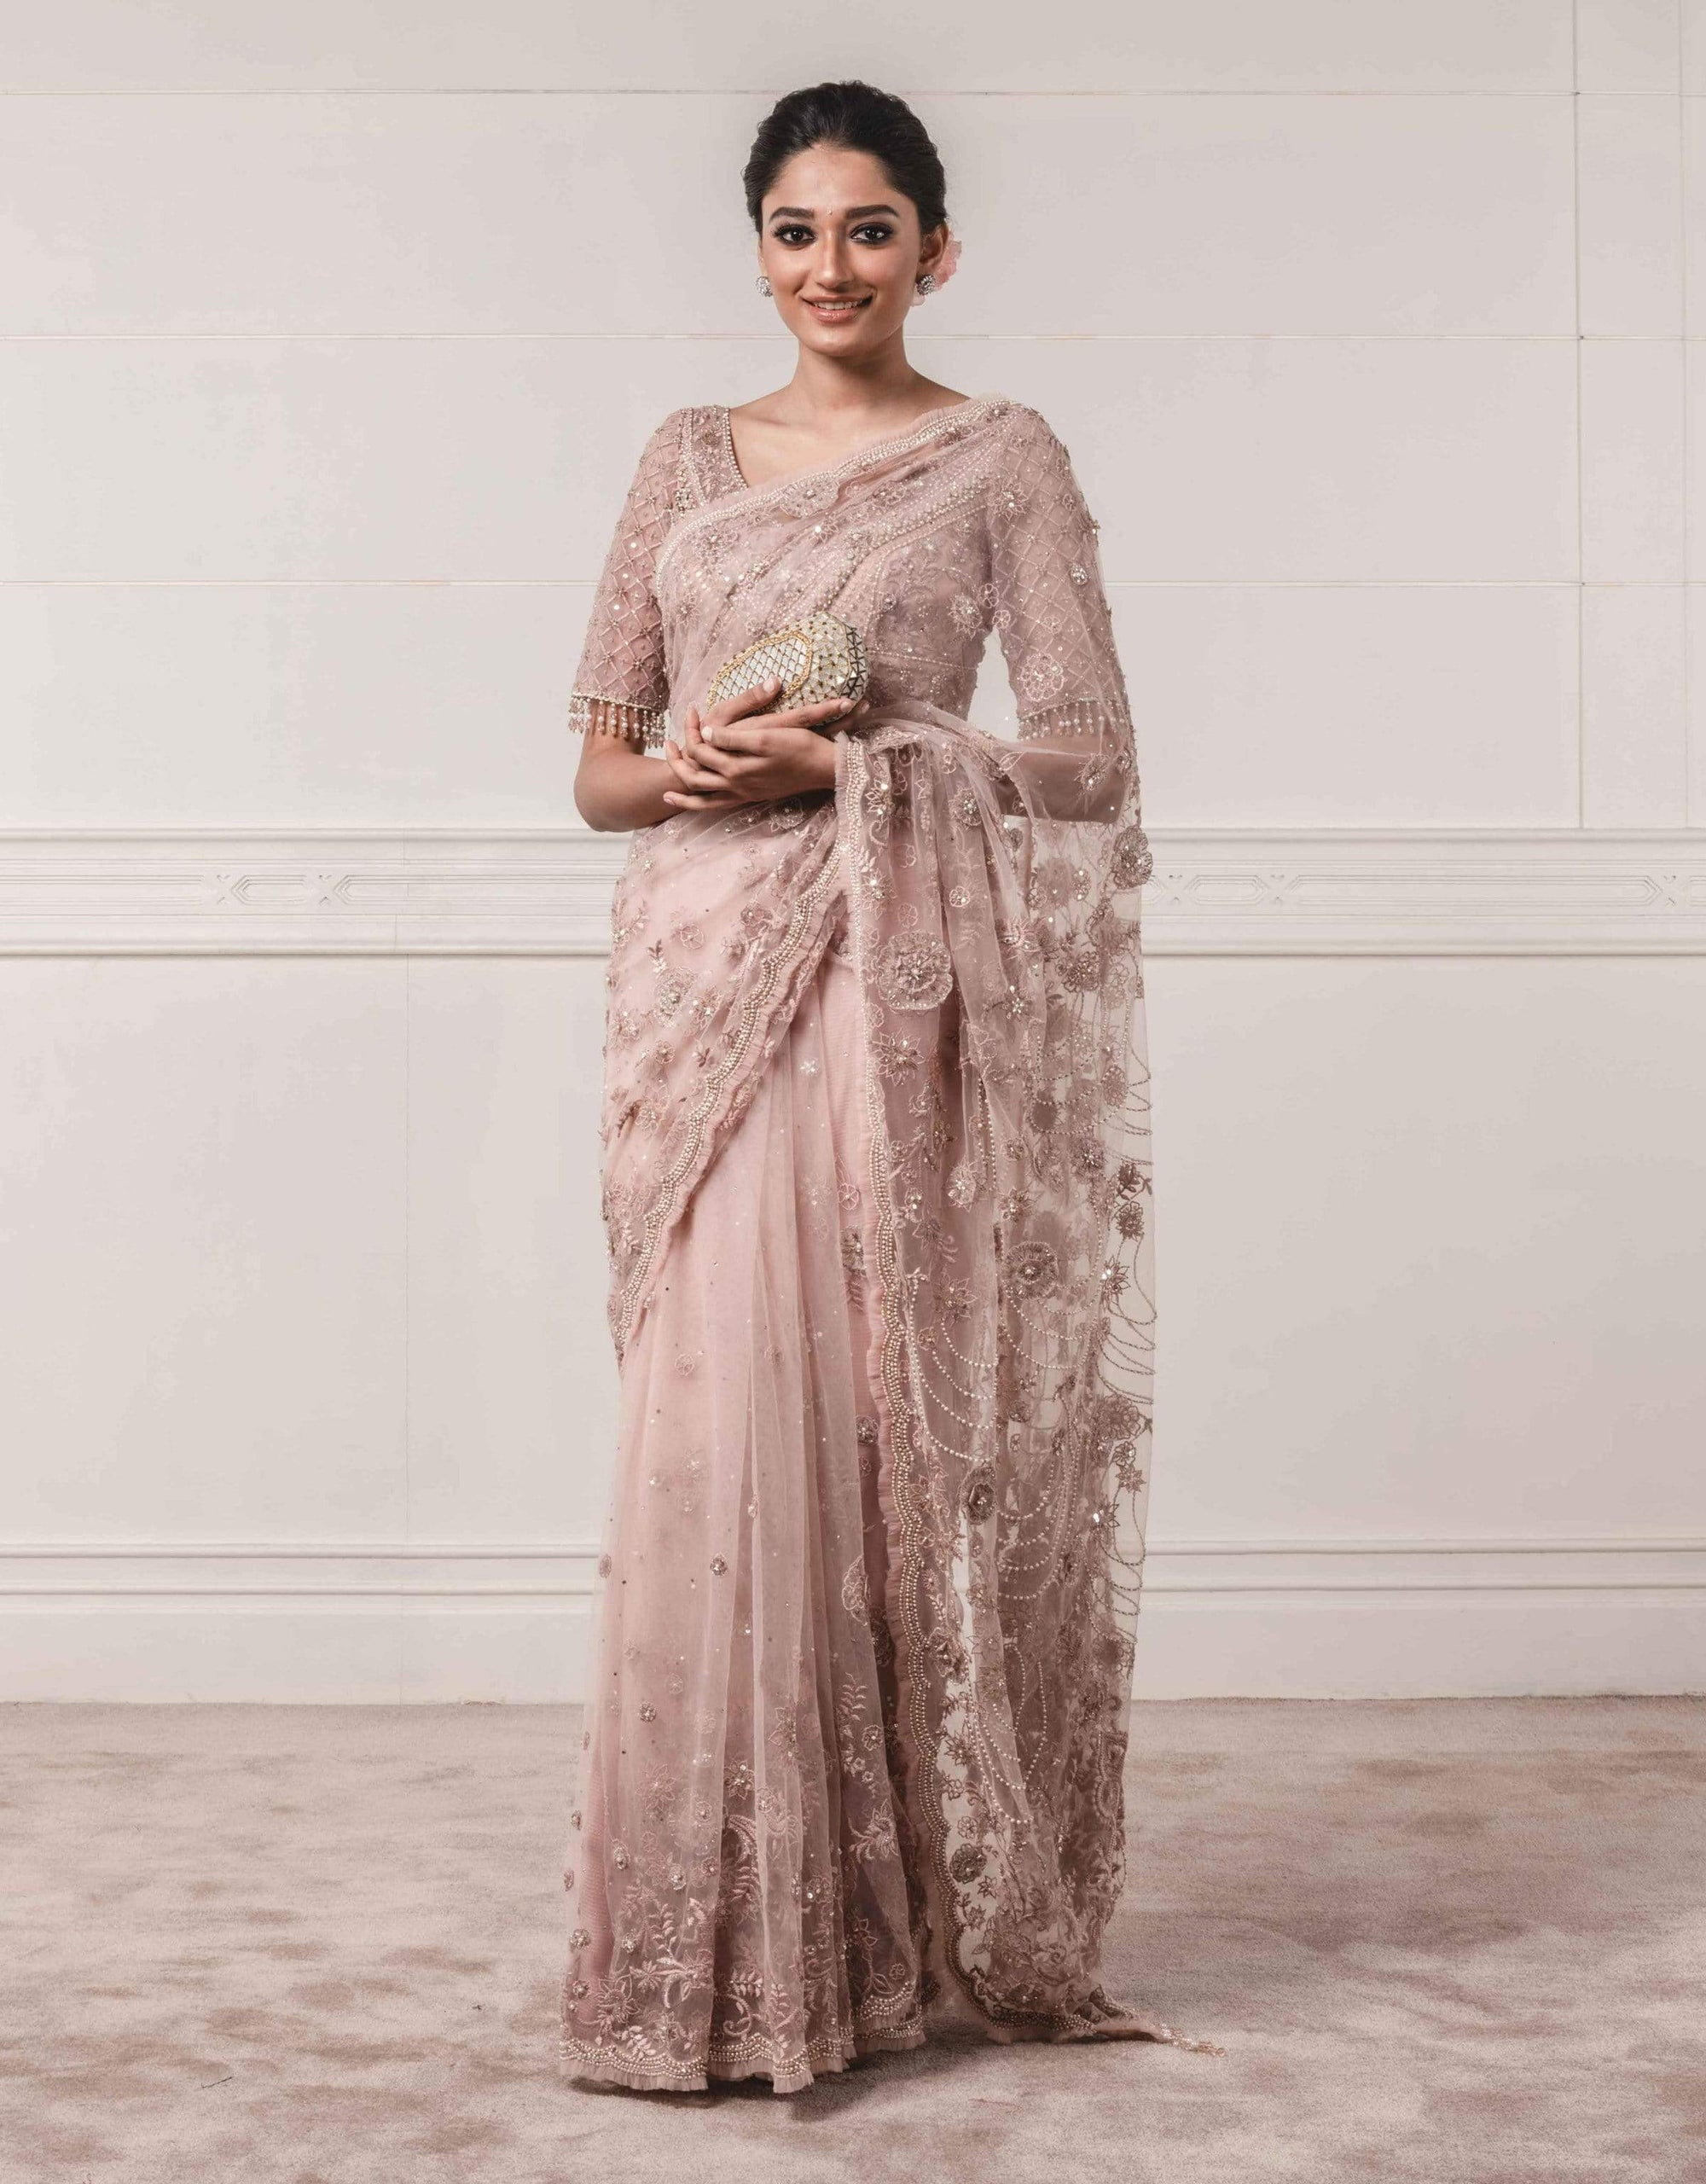 Tarun Tahiliani Sarees Resham embroided saree paired with a blouse and a petticoat.